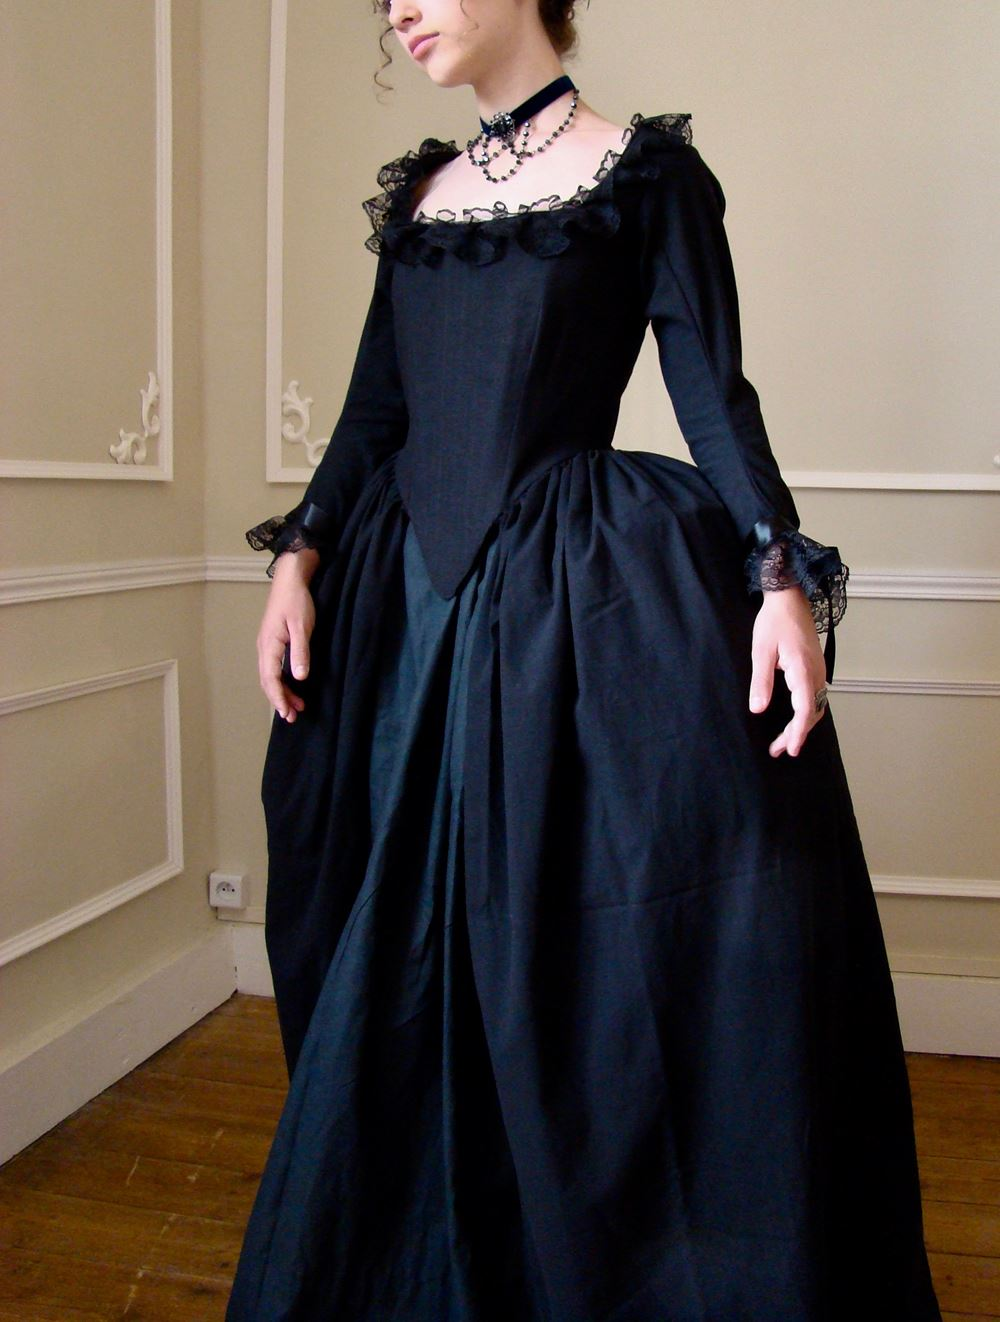 Rococo Black Dress With Long Sleeves Rococo Dress Black Victorian Dress Roccoco Dresses [ 1322 x 1000 Pixel ]